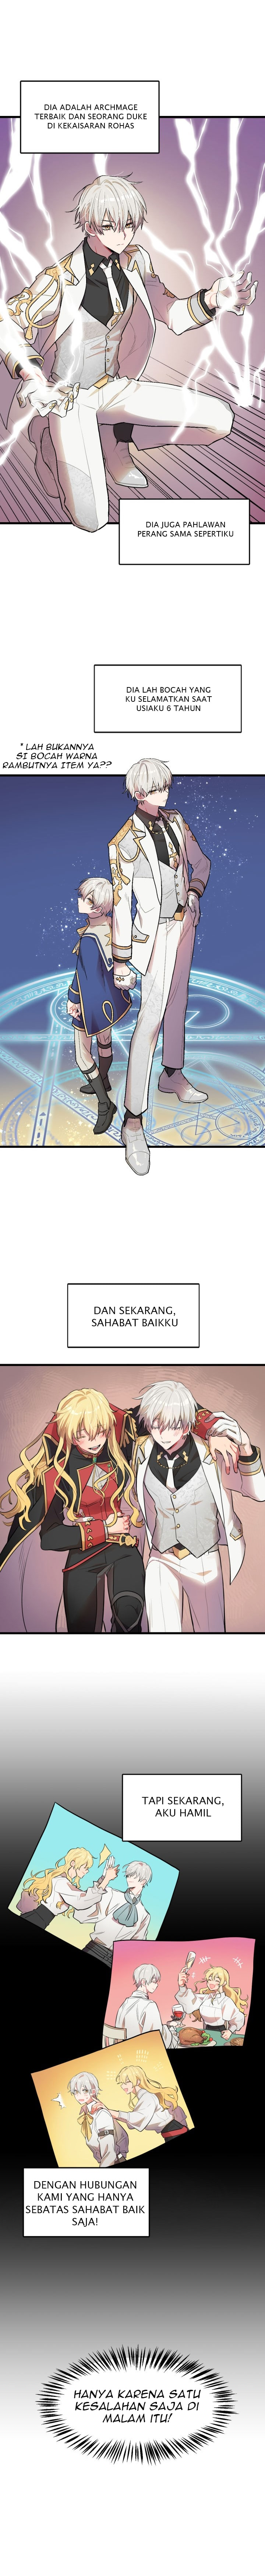 Spoiler Manhwa The Baby Isn't Yours 3